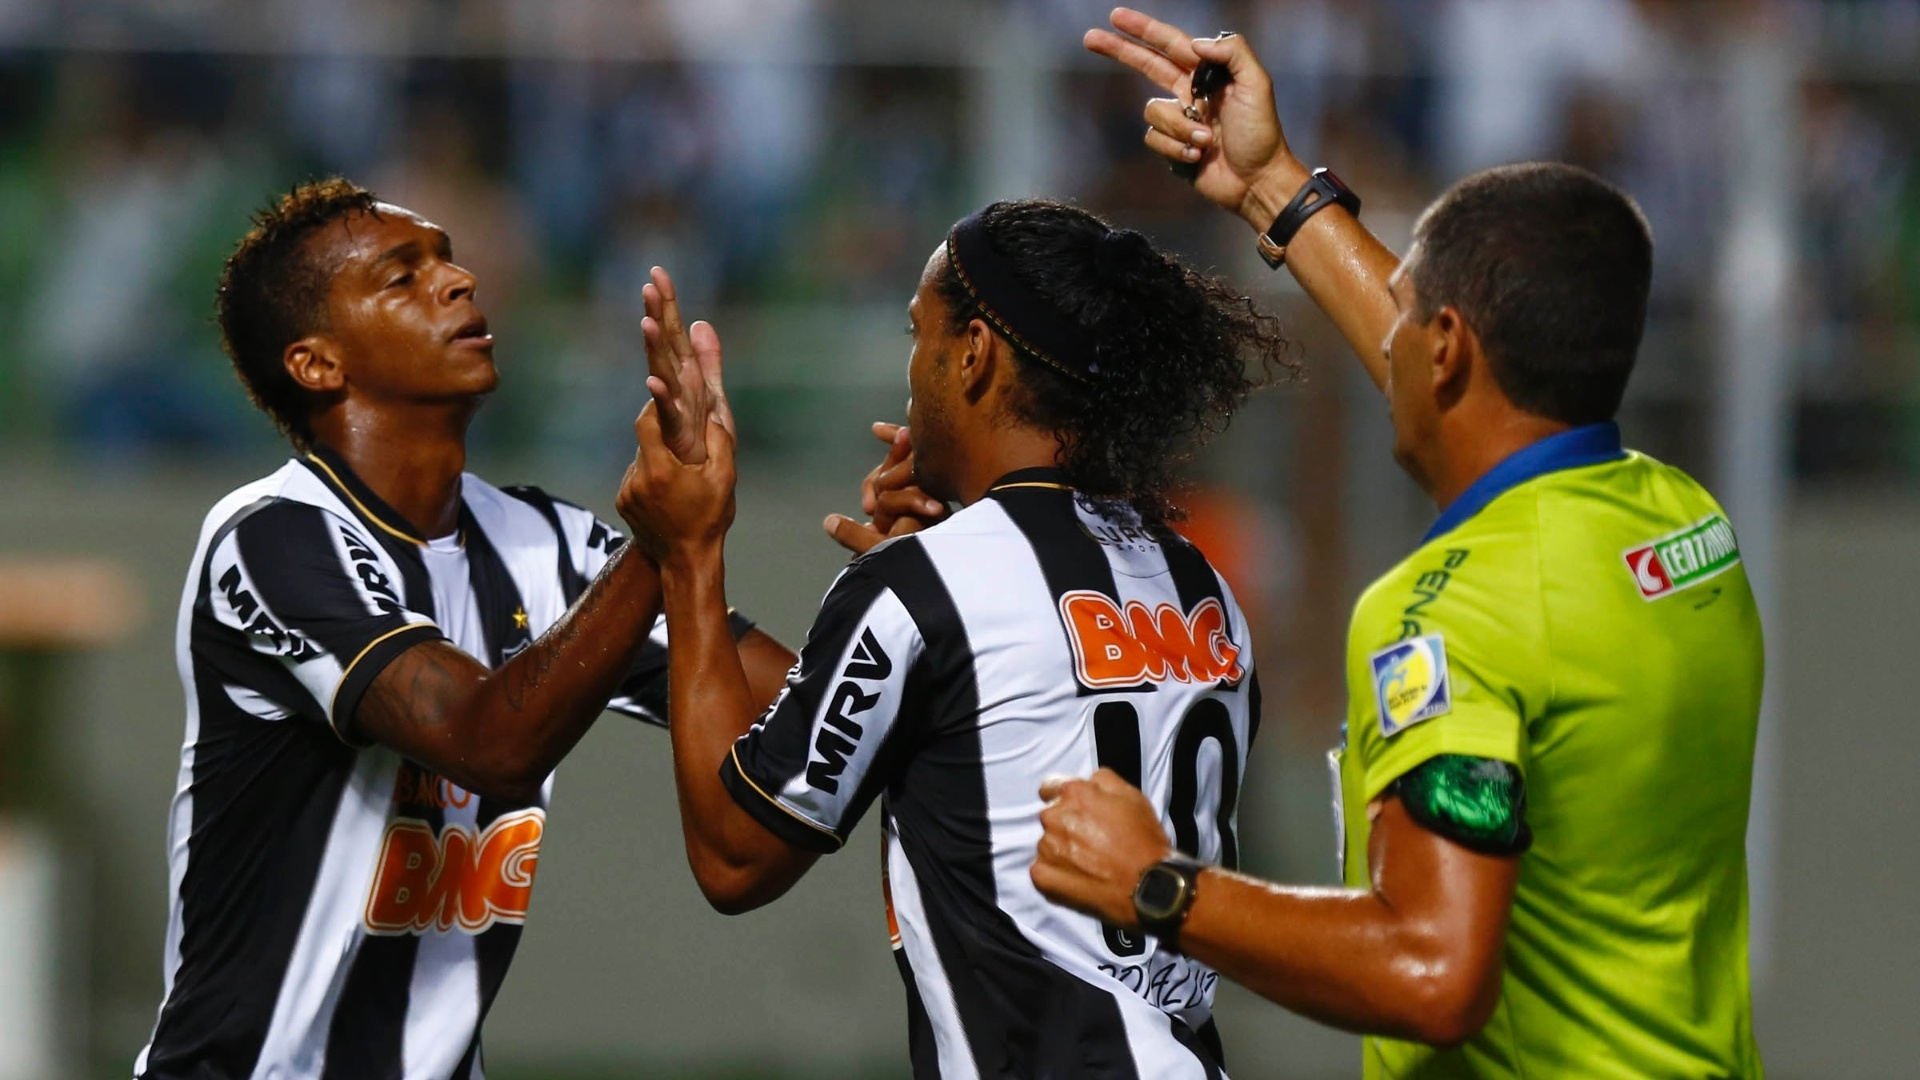 13.fev.2013 - J comemora gol do Atltico-MG com Ronaldinho Gacho enquanto rbitro pede o reincio da partida